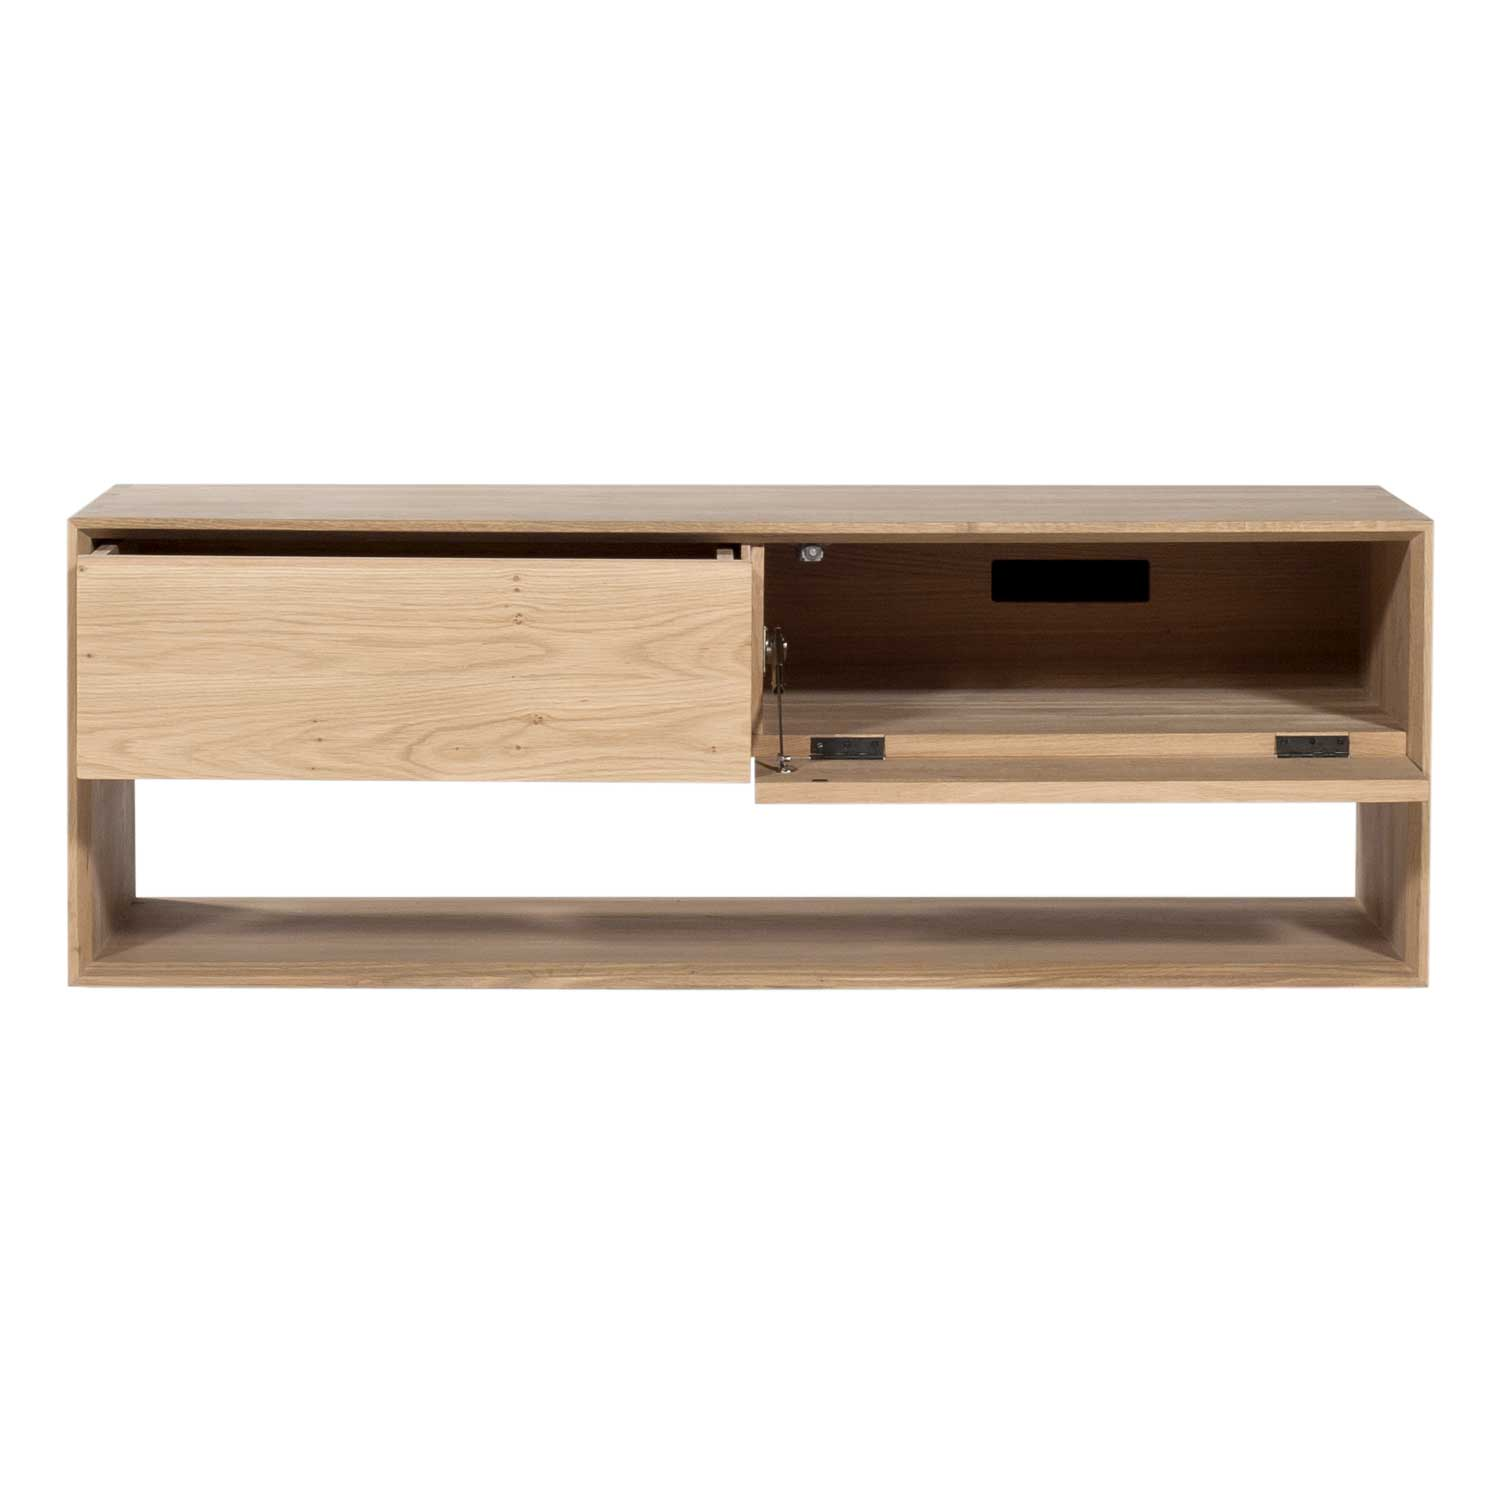 Ethnicraft Oak Nordic TV units